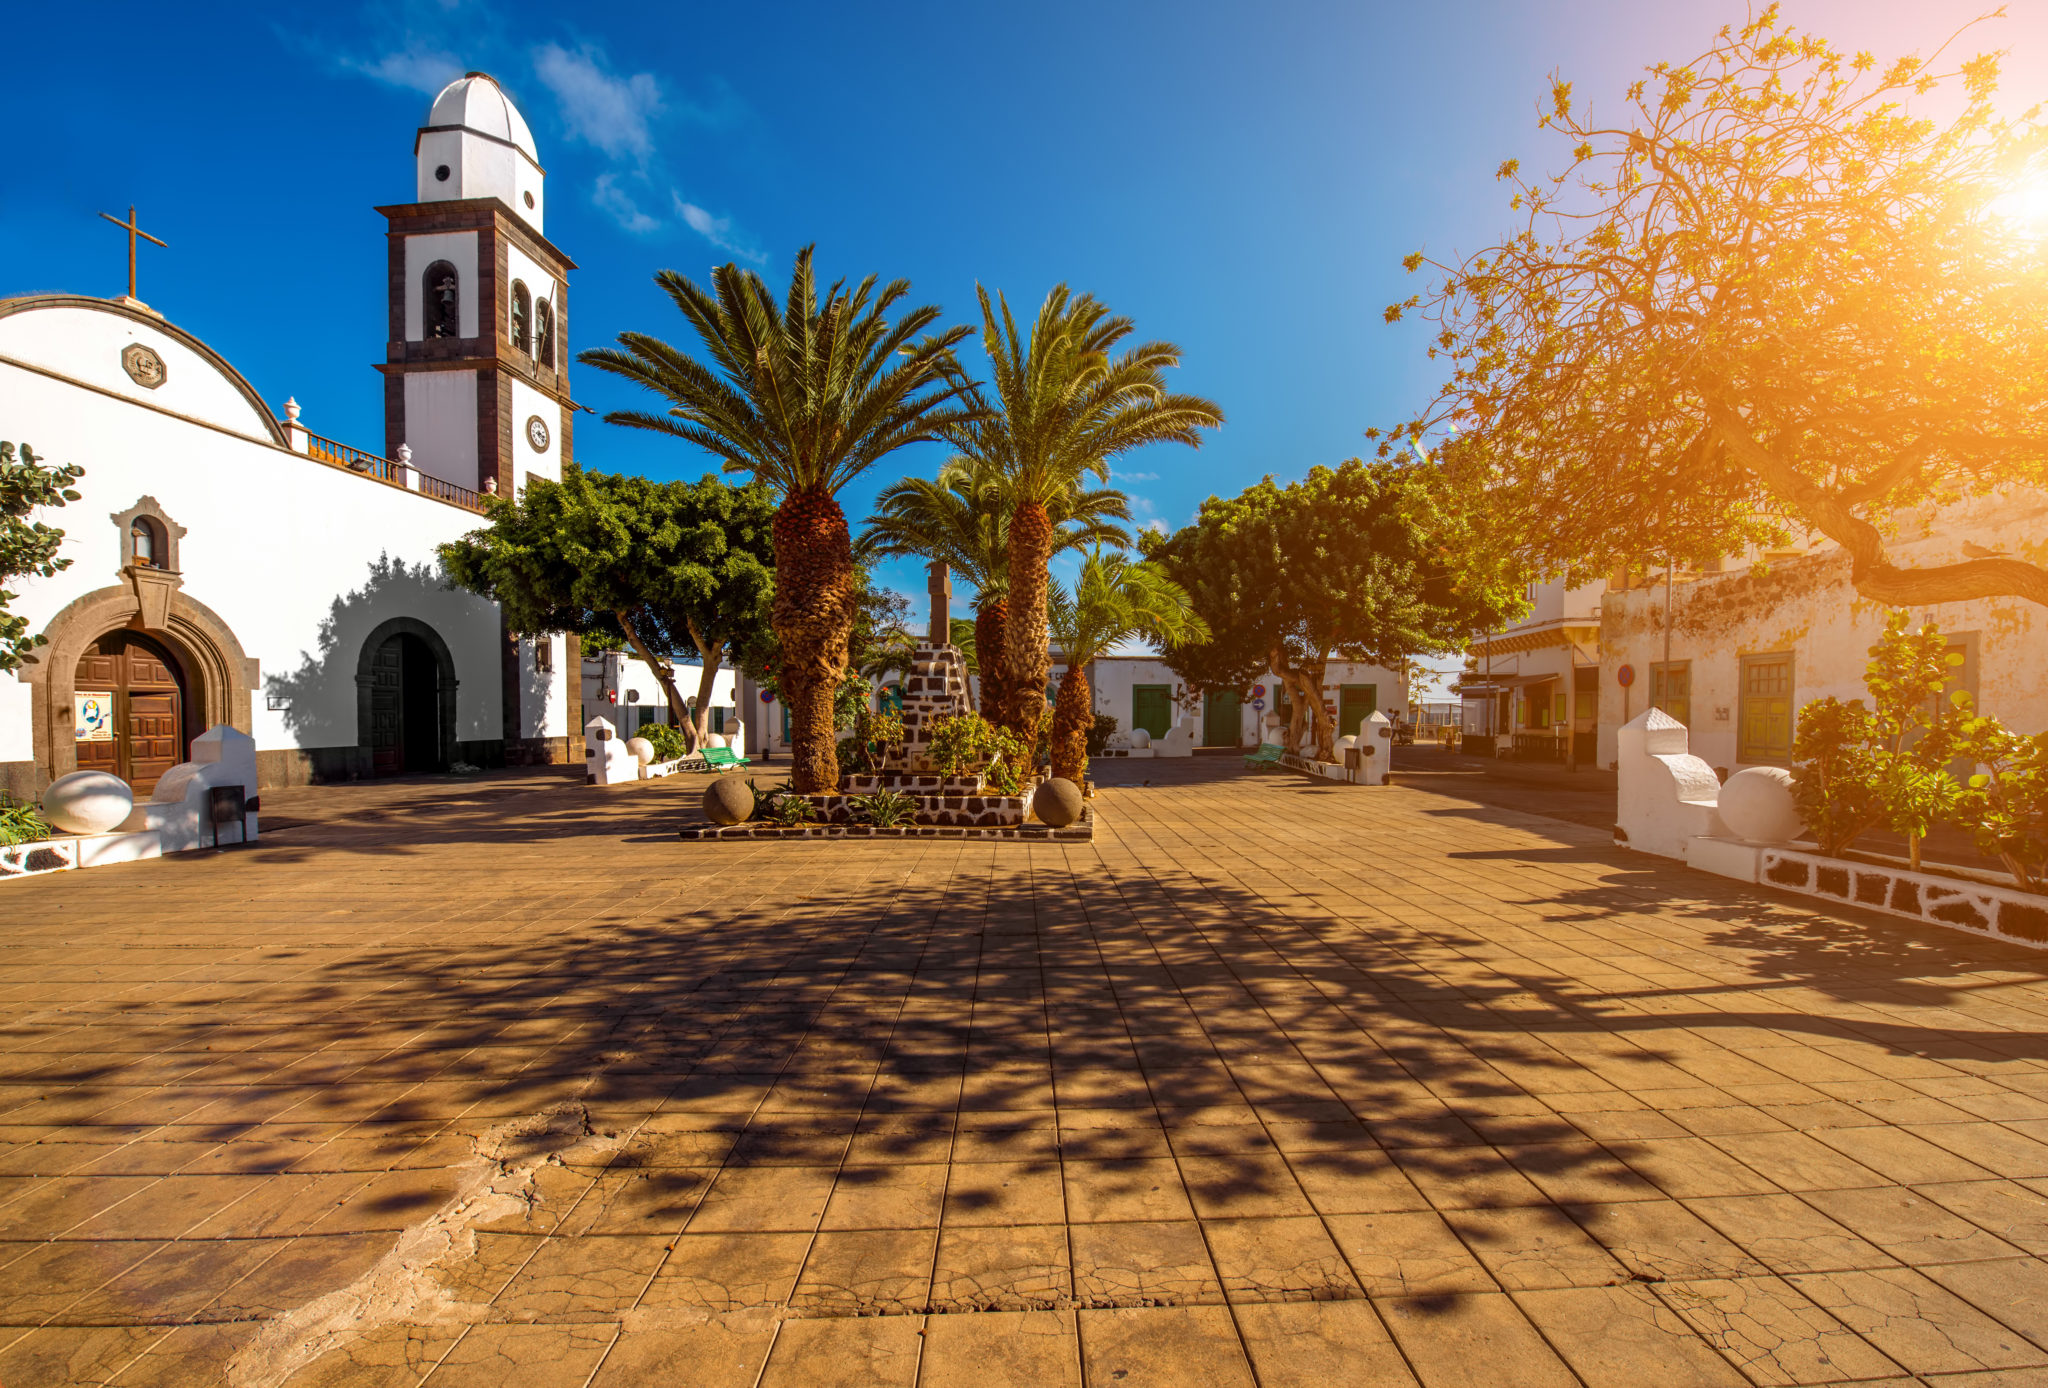 San Gines church in Arrecife city on Lanzarote island